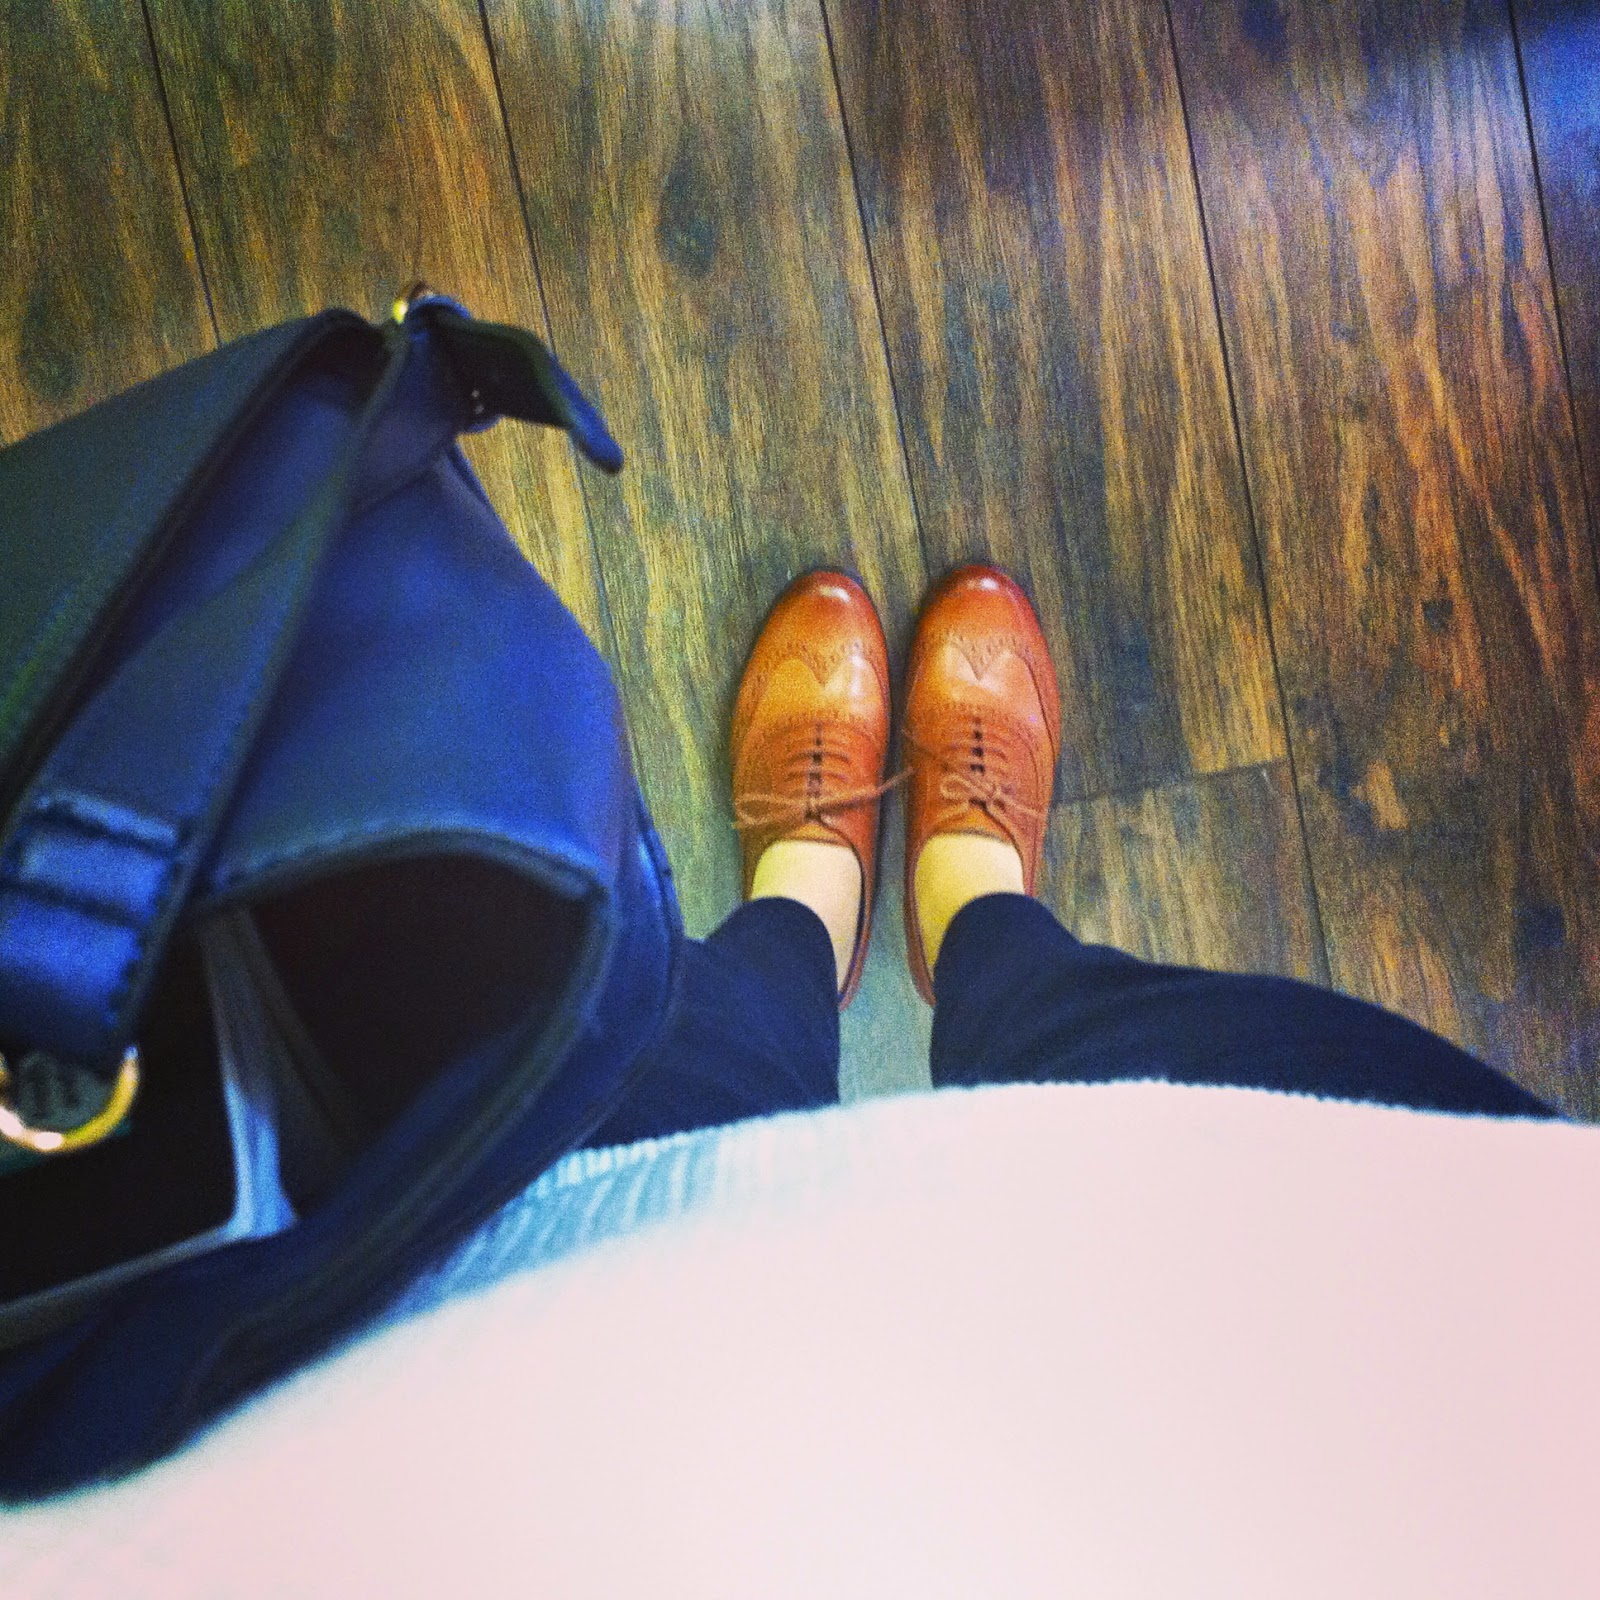 OOTD Brogues and Navy